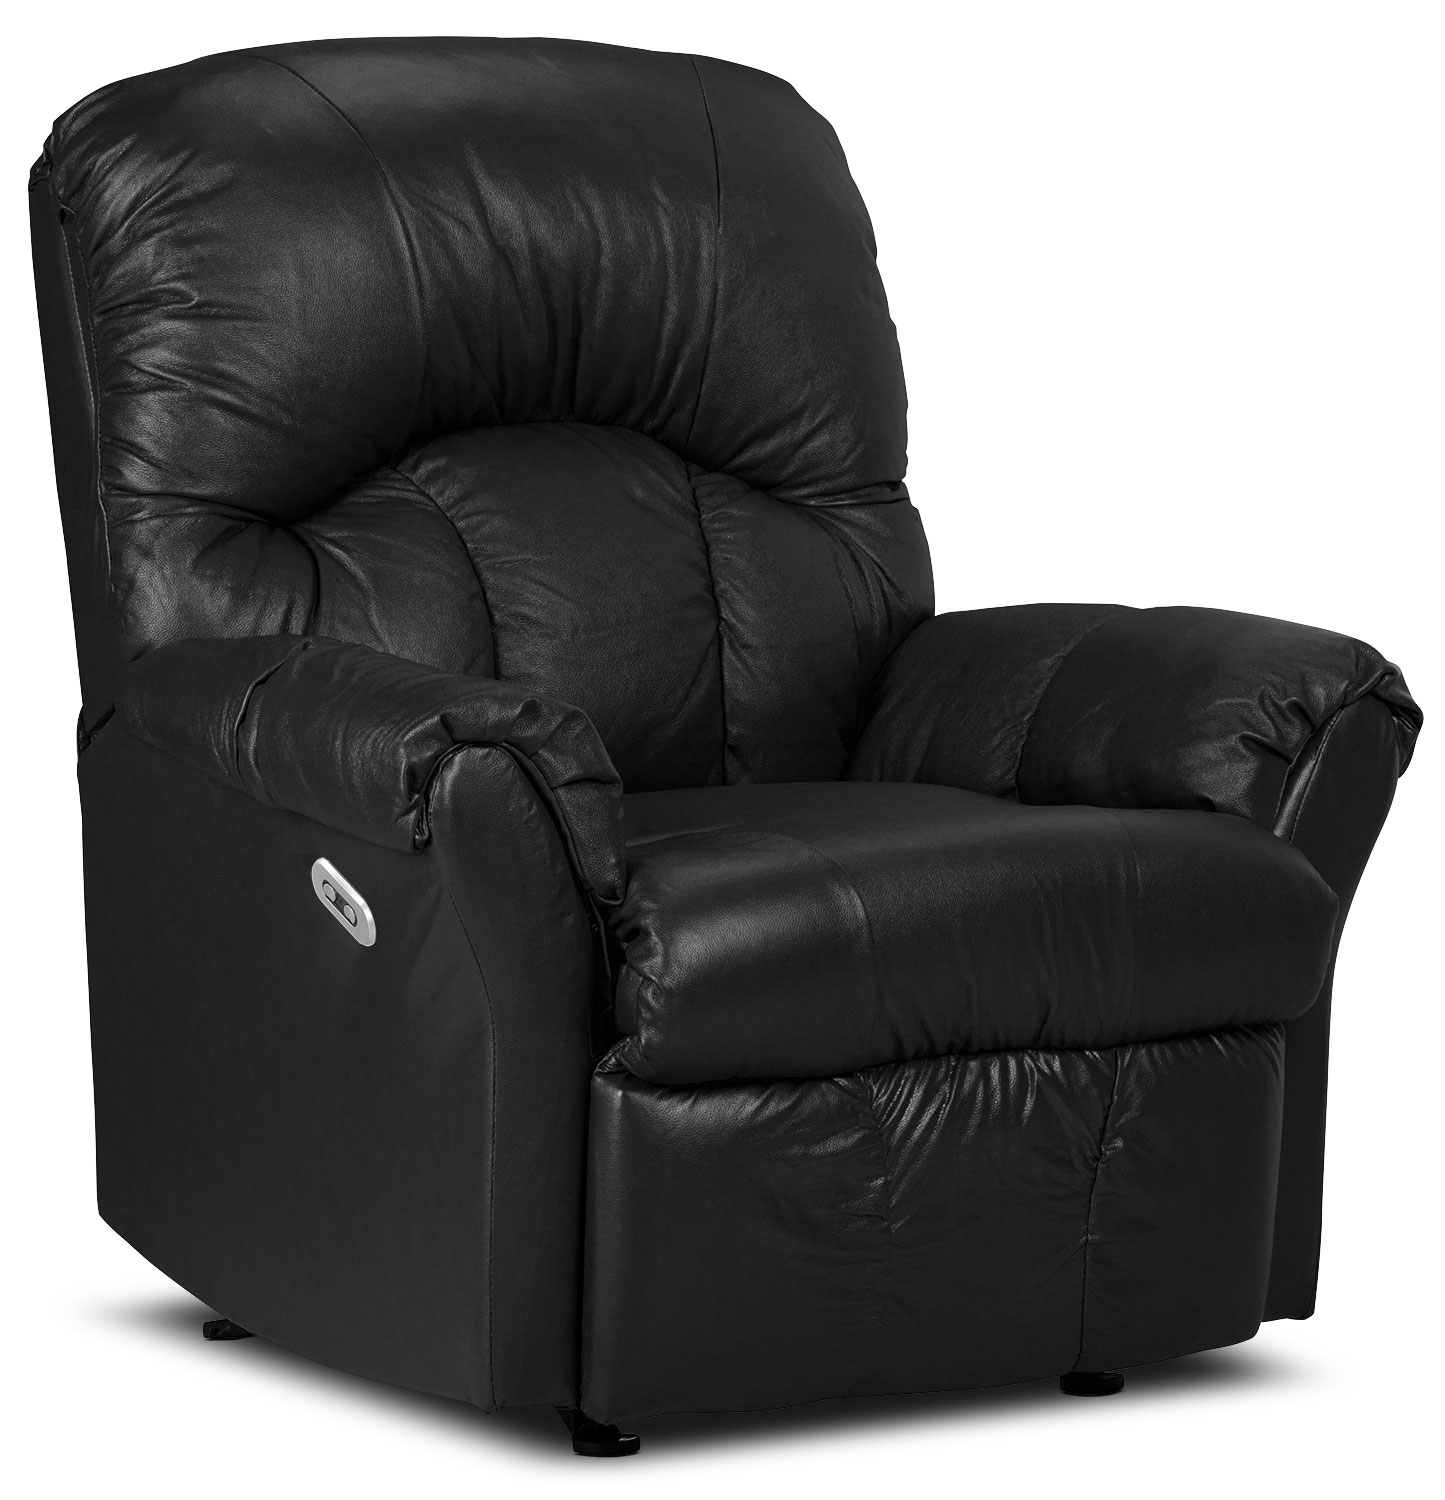 Living Room Furniture - Designed2B Recliner 6734 Genuine Leather Power Recliner Chair - Black